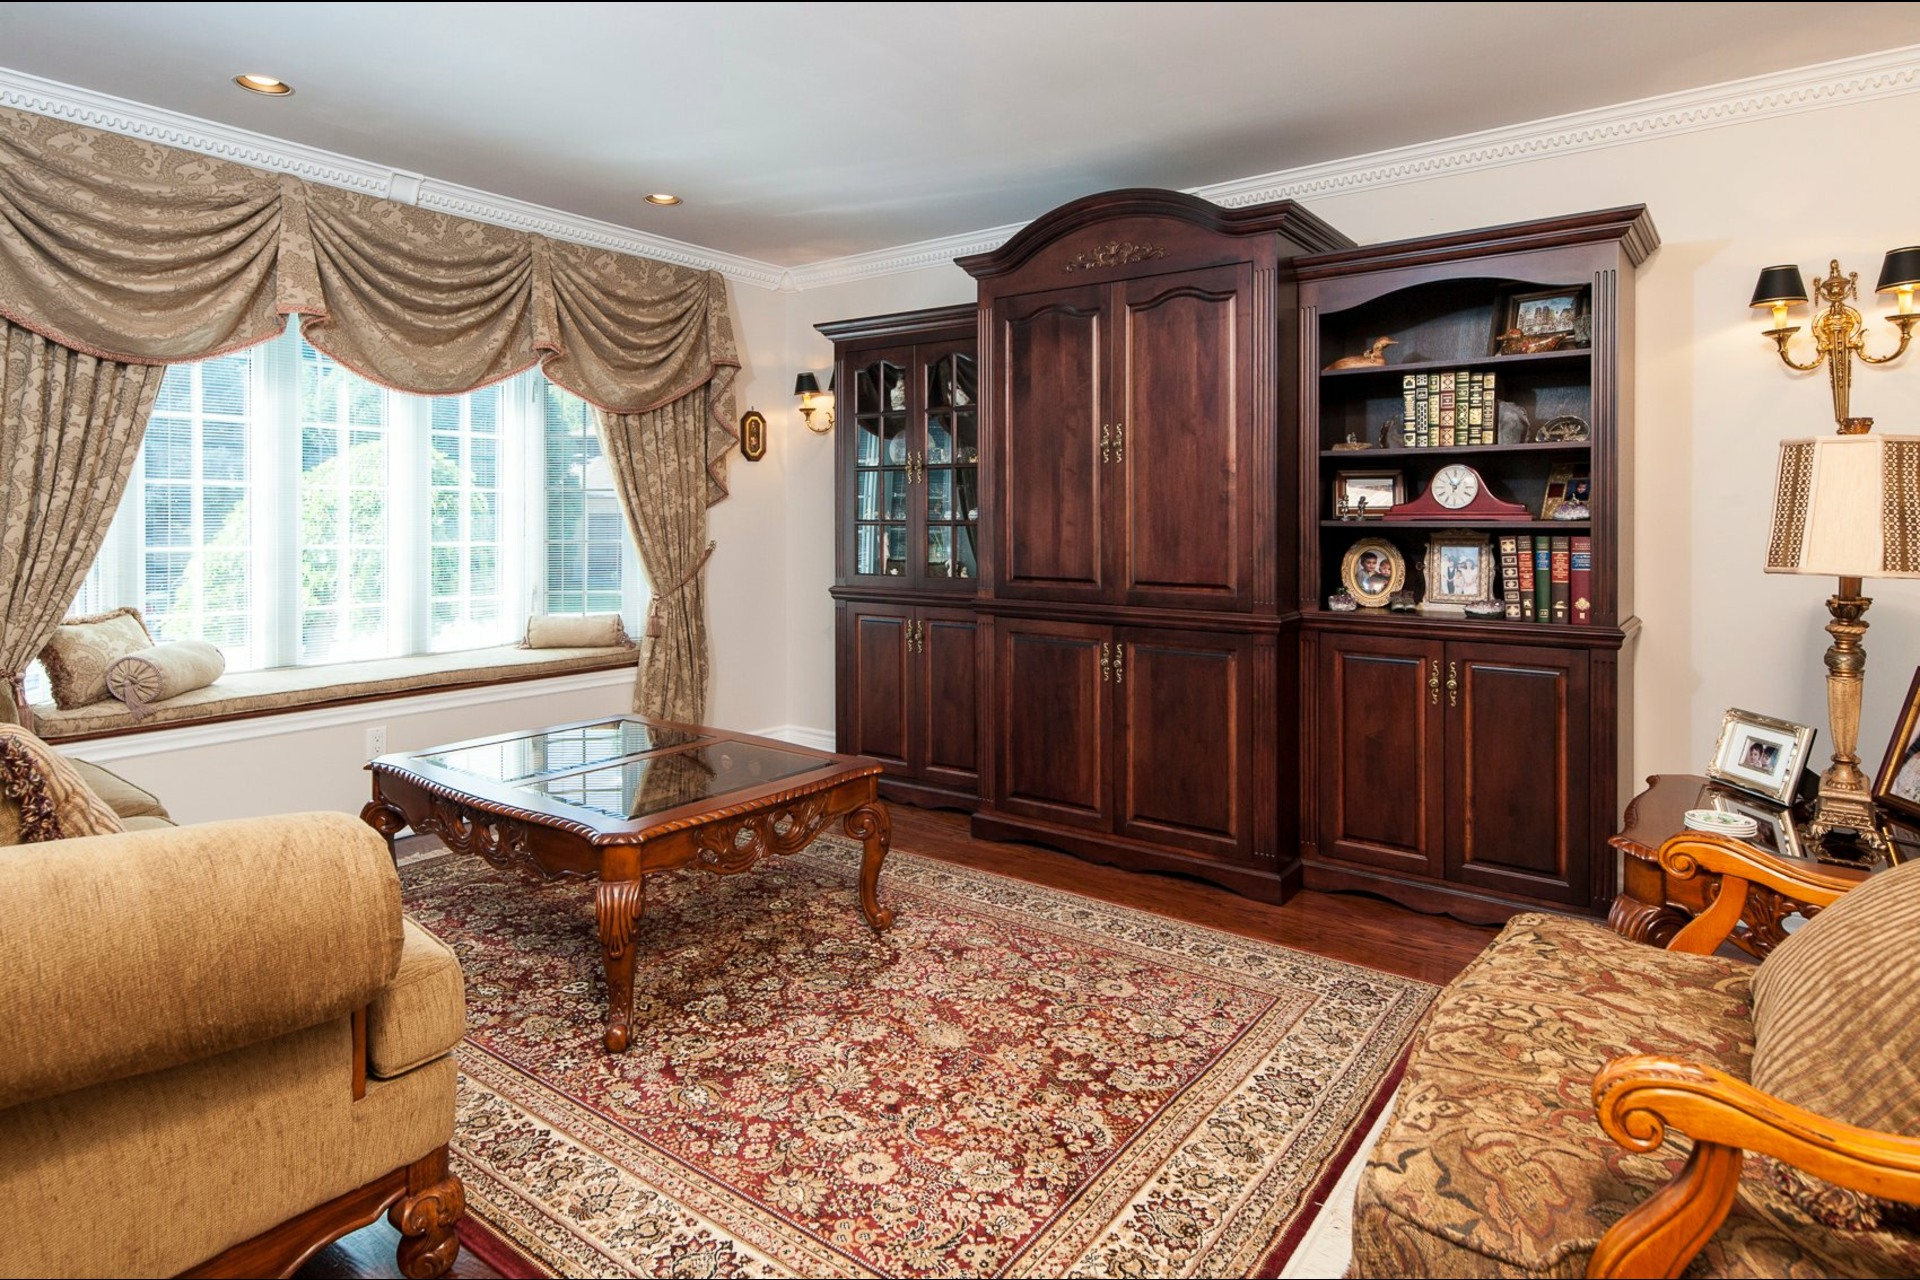 image 6 - House For sale Beaconsfield